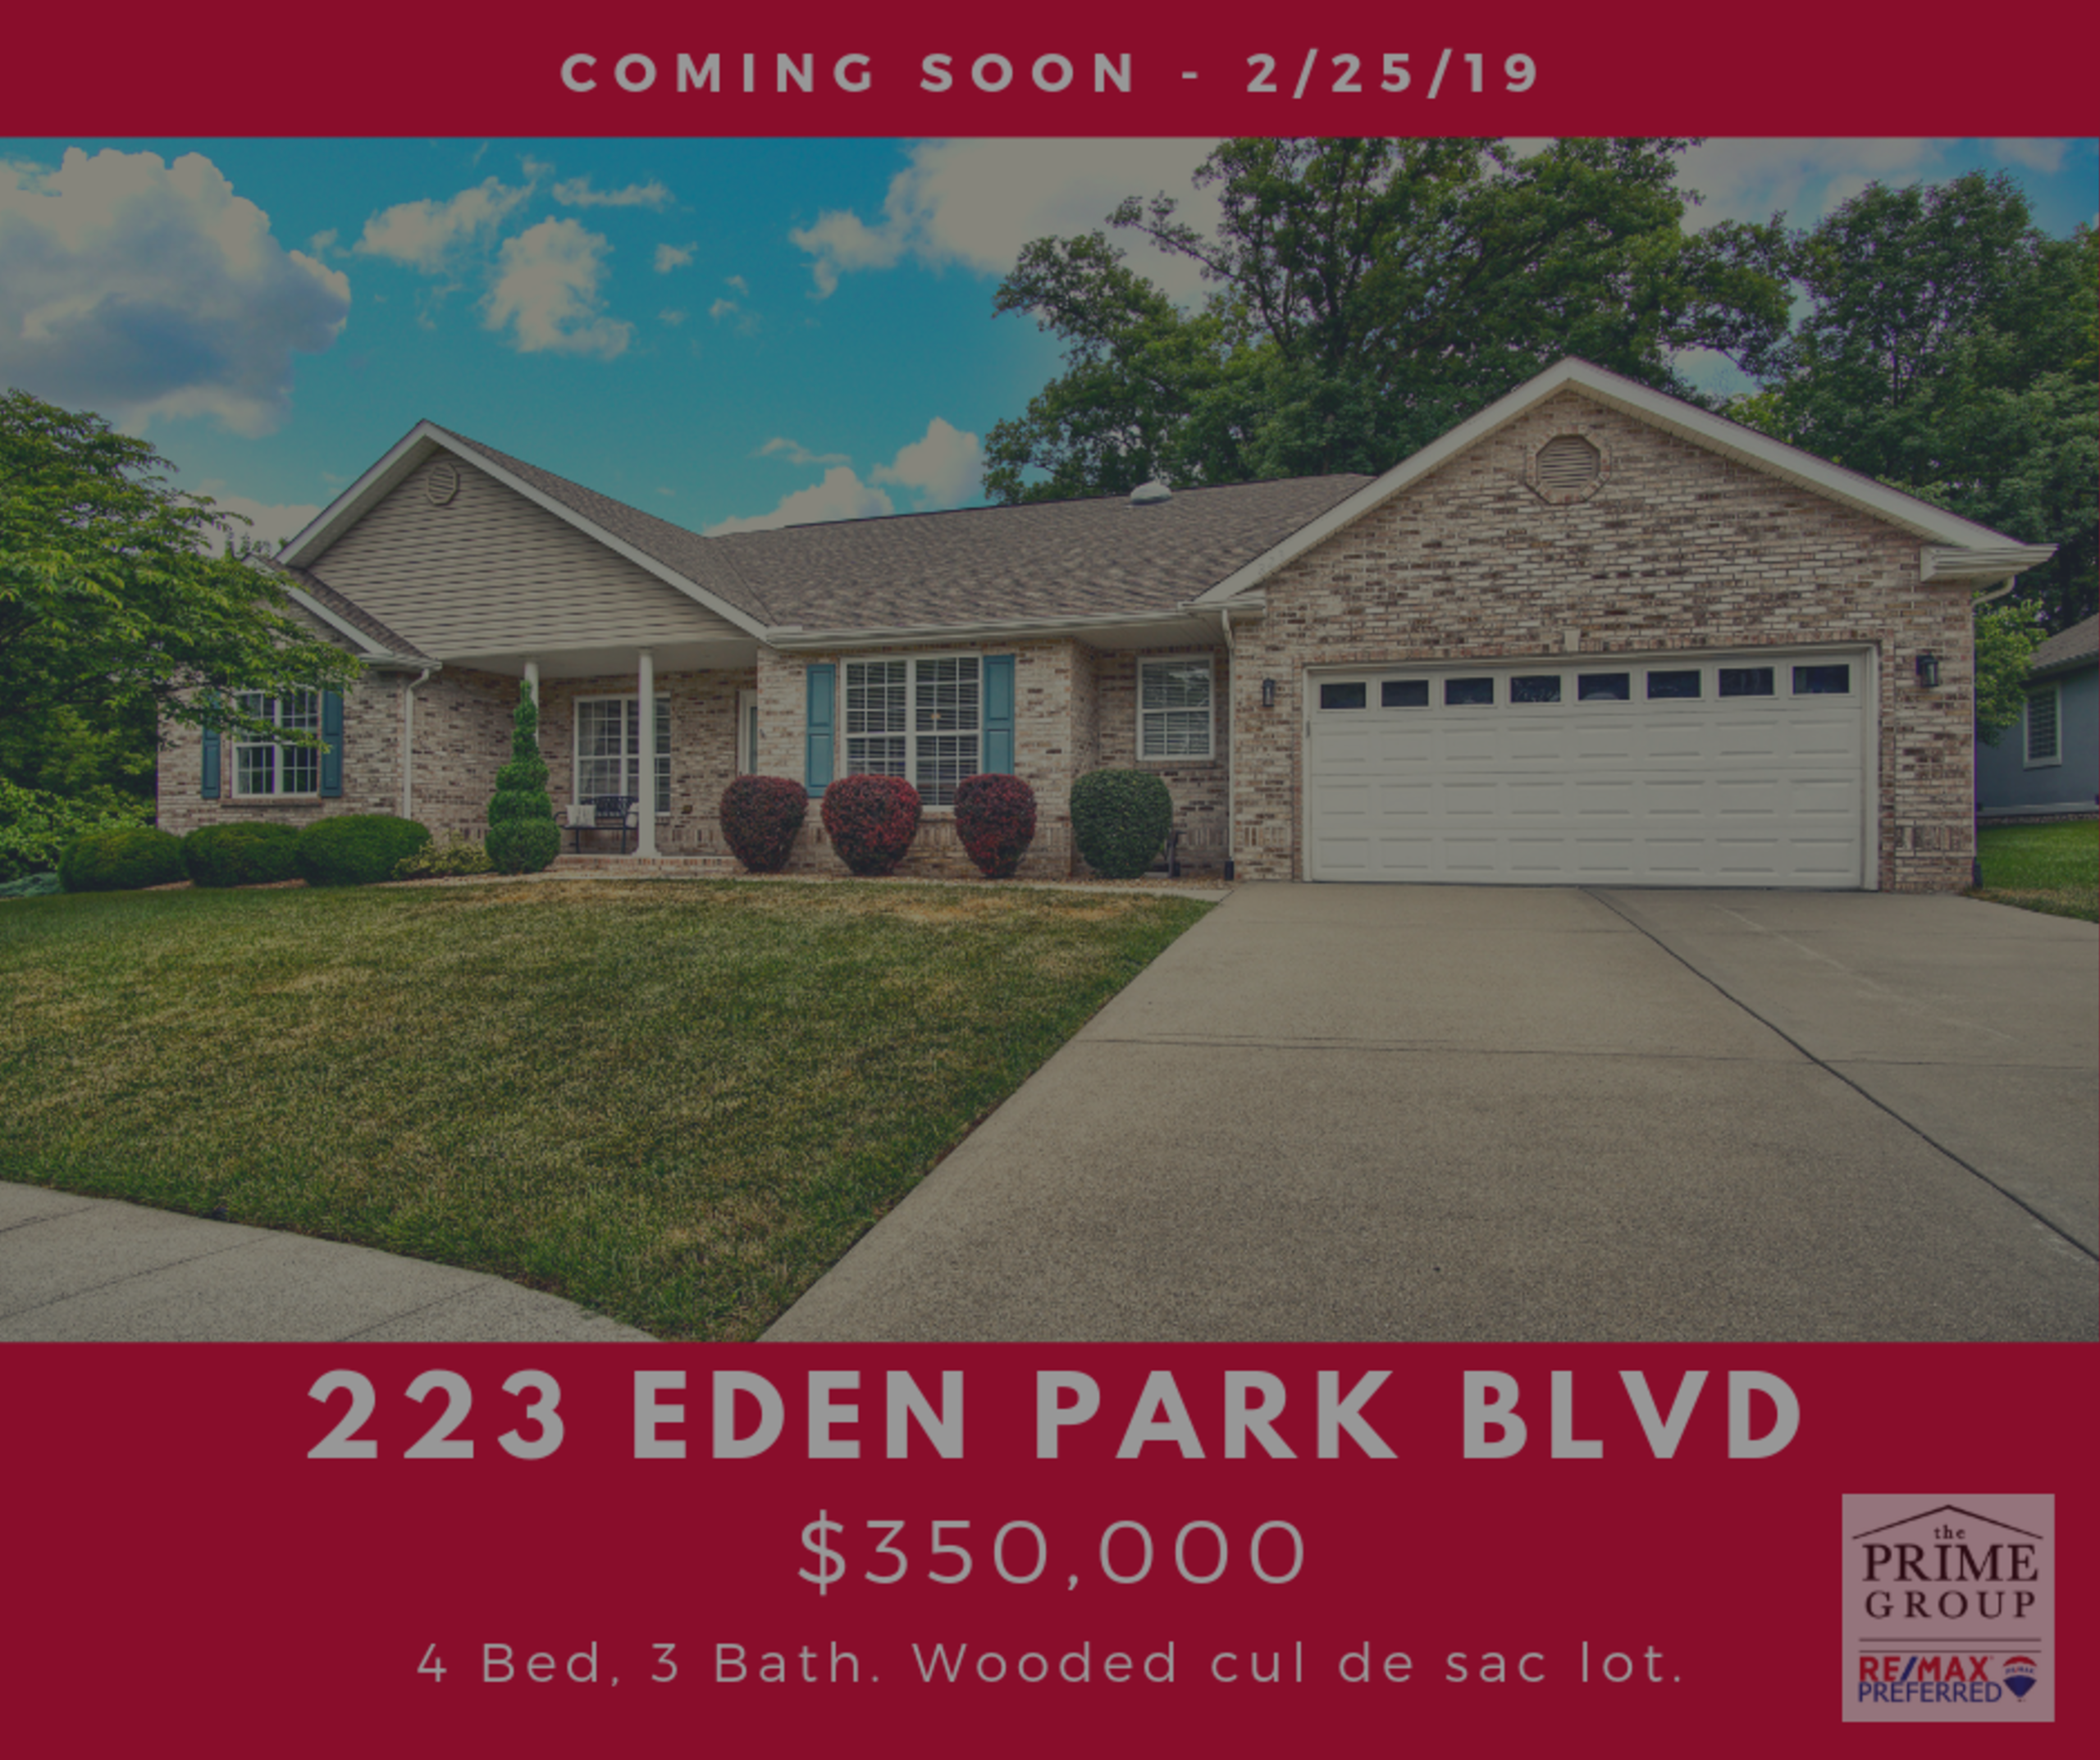 Coming Soon 223 Eden Park